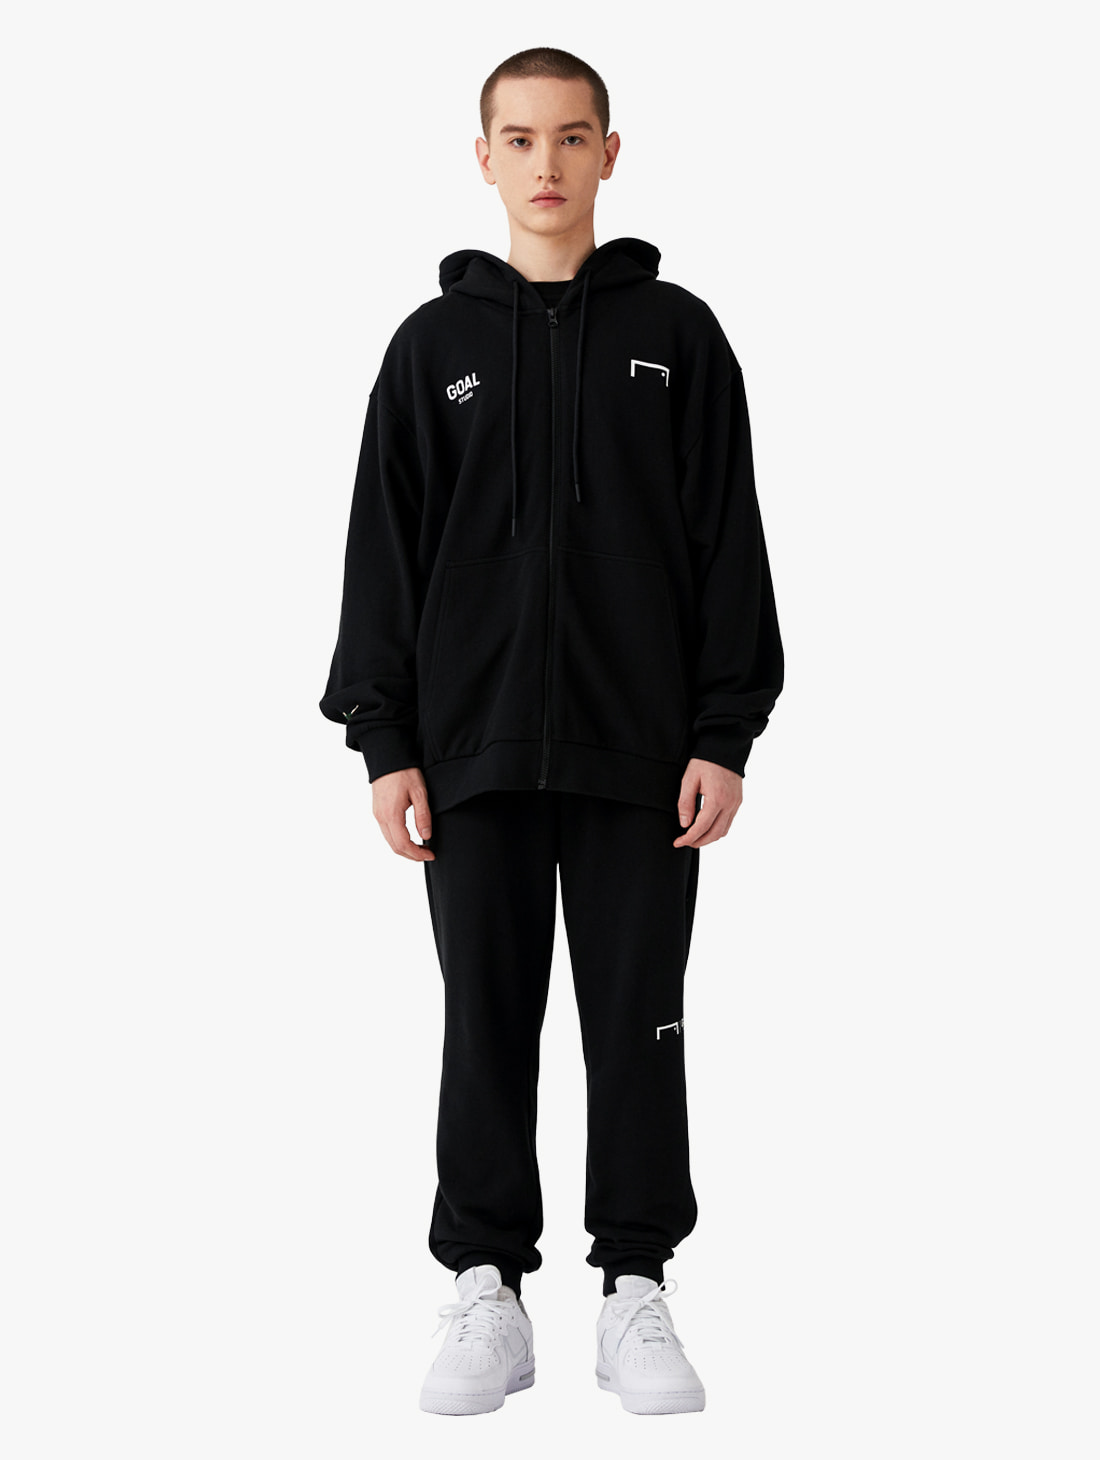 [10% OFF] SIGNATURE ZIP UP HOODIE & GOAL KNIT JOGGER PANTS 2.0 SET